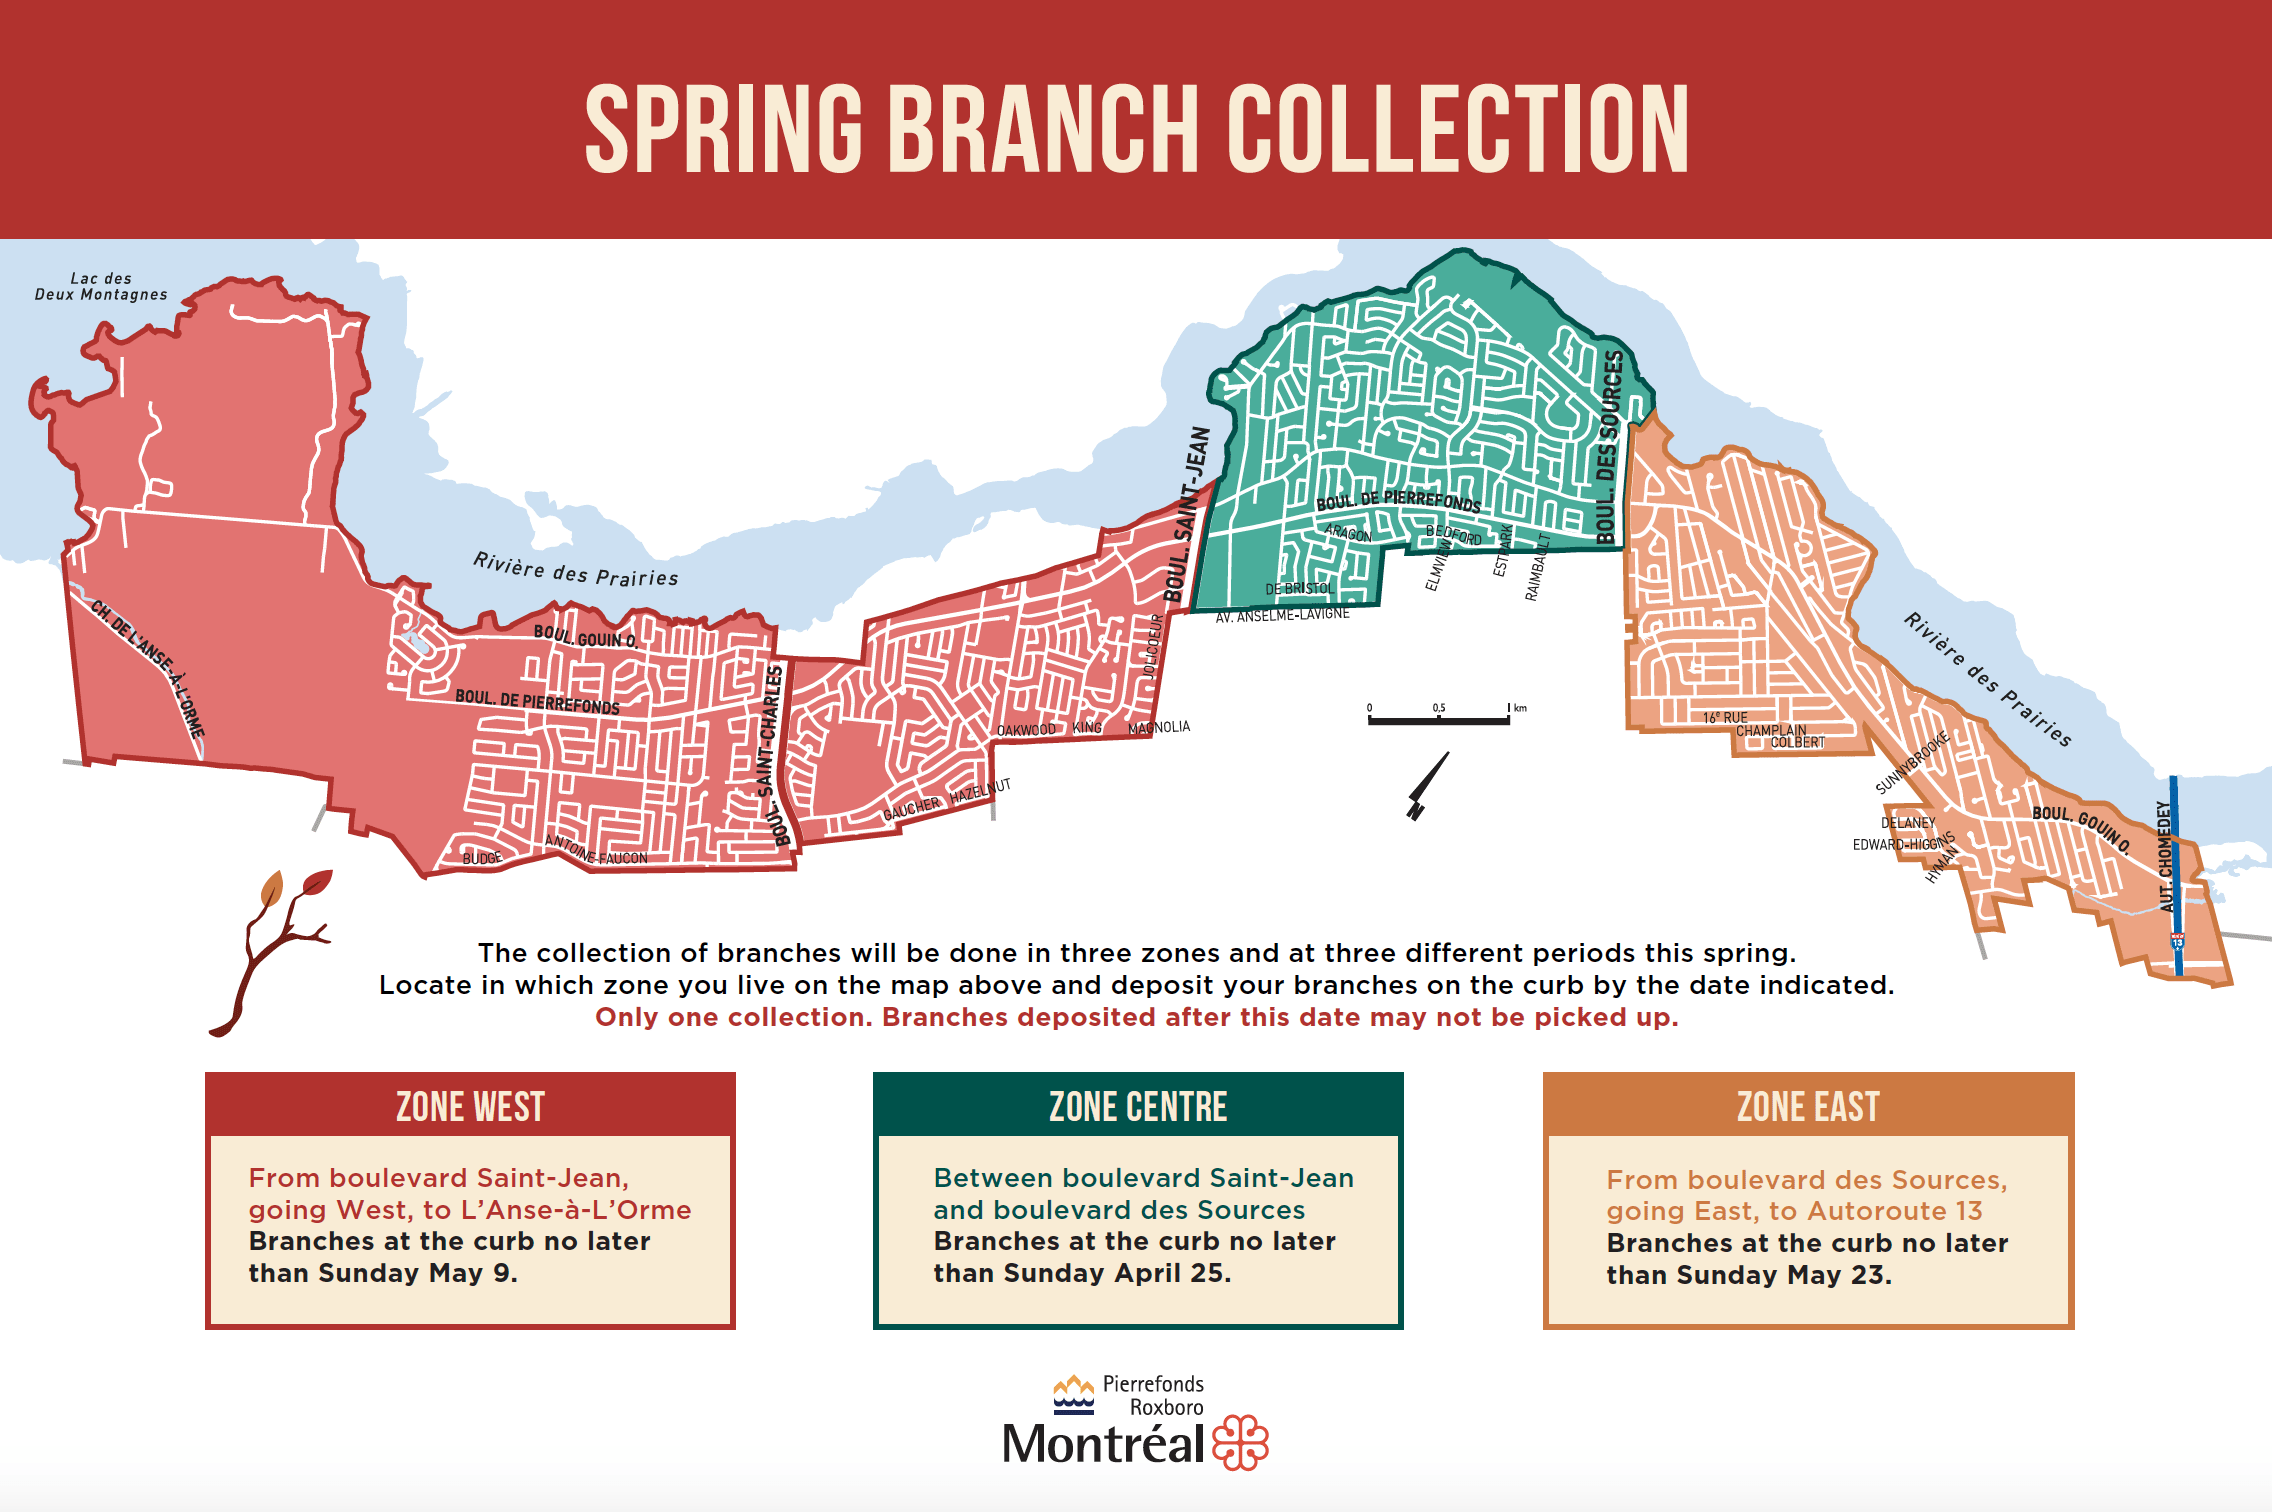 Map of zones of branch collections in Pierrefonds-Roxboro